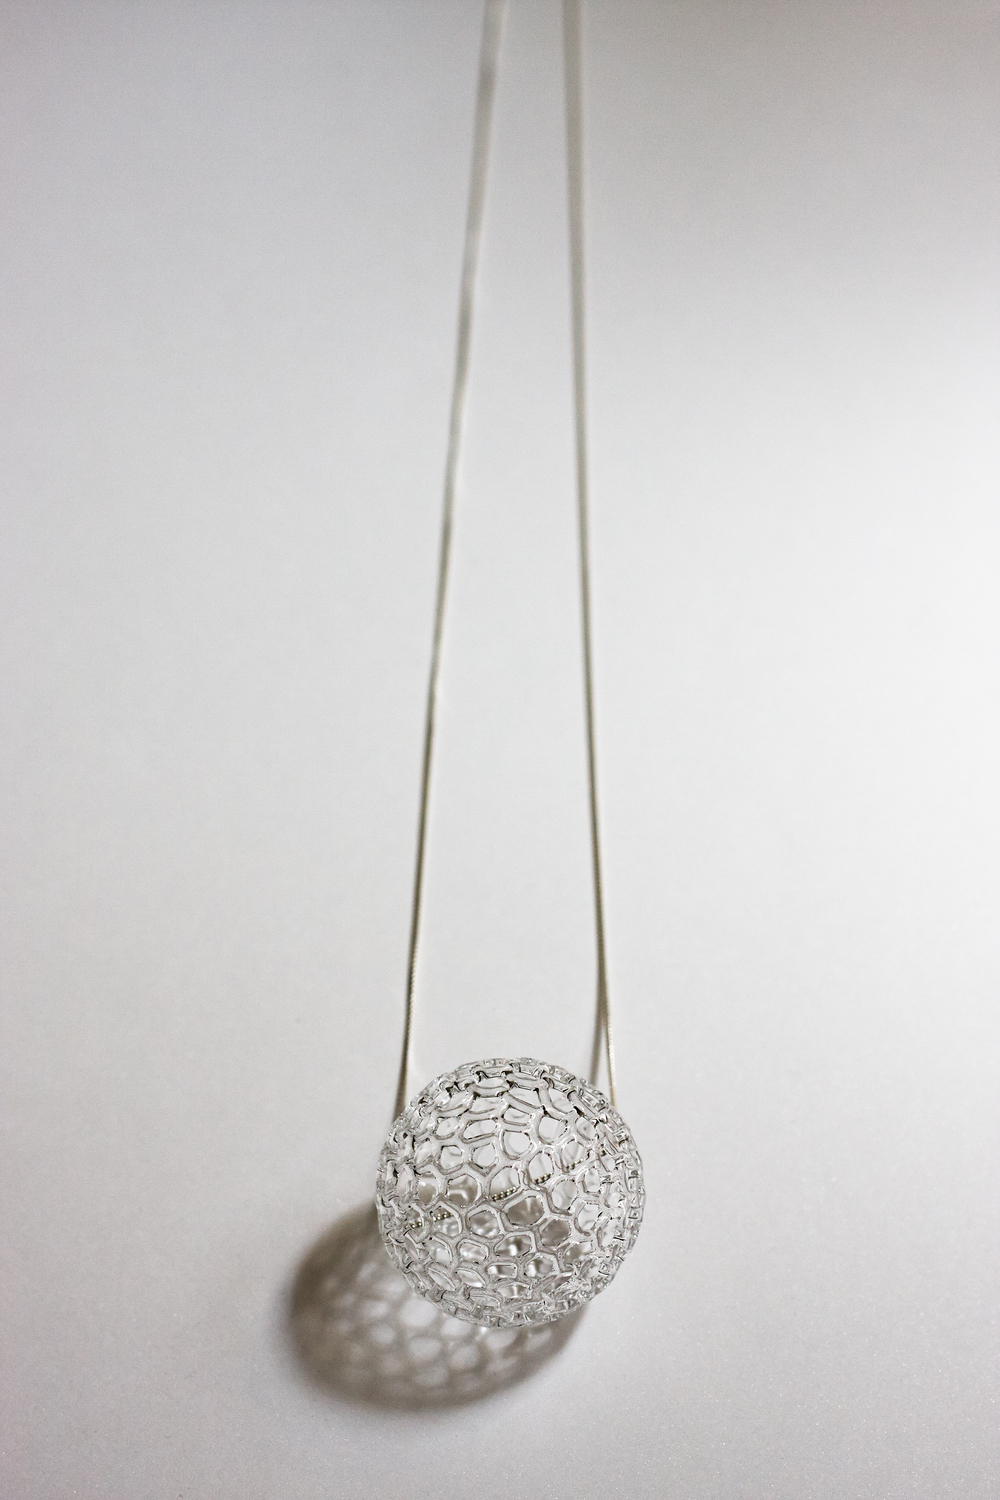 Bonbon necklace (silver) by Harrys